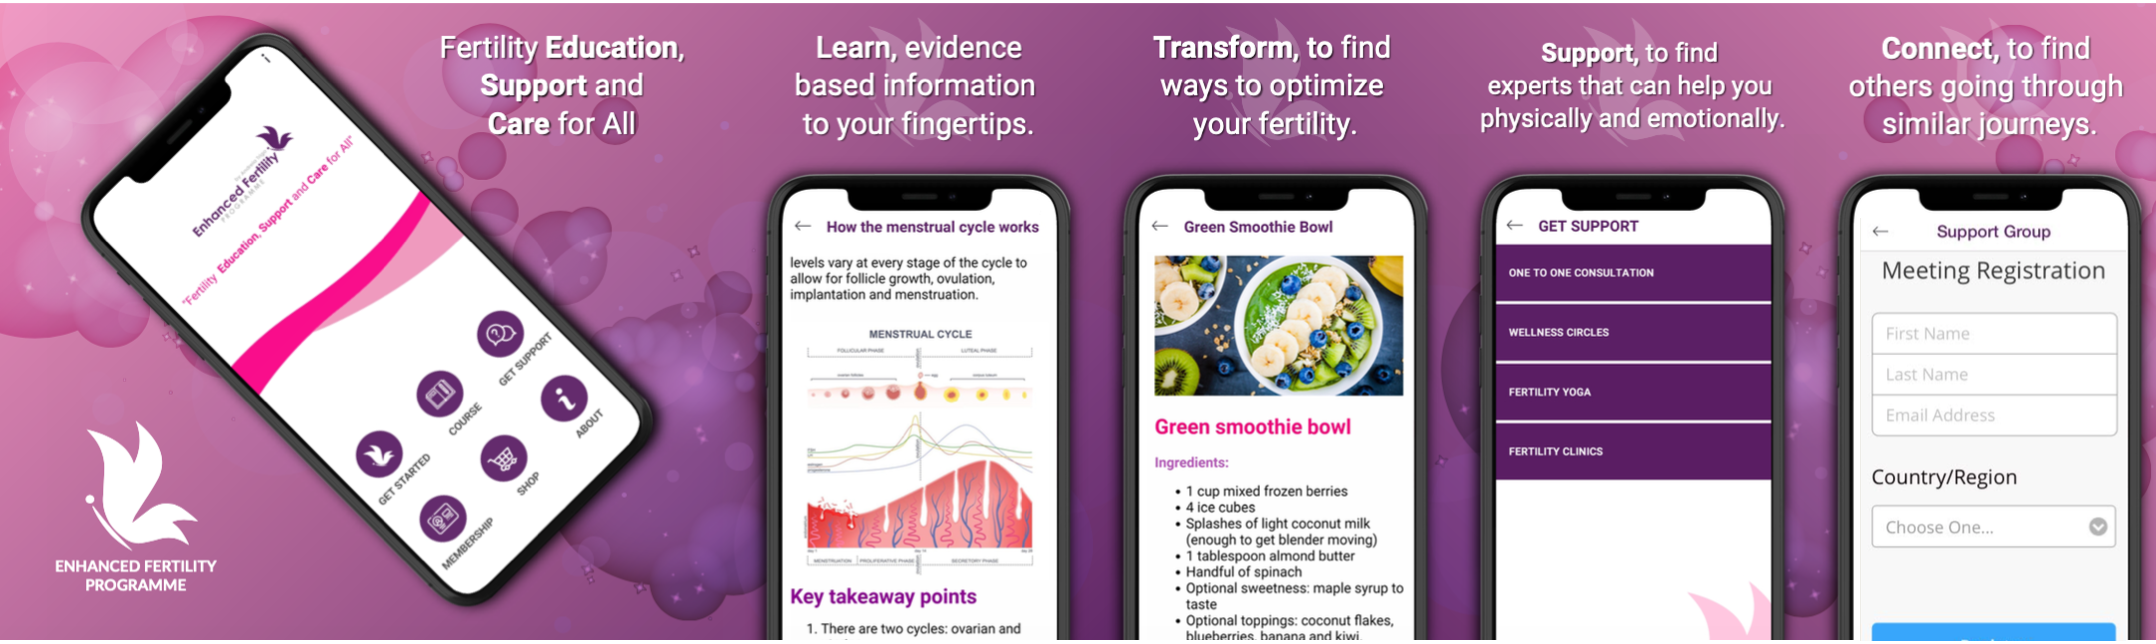 Enhanced Fertility Programme App